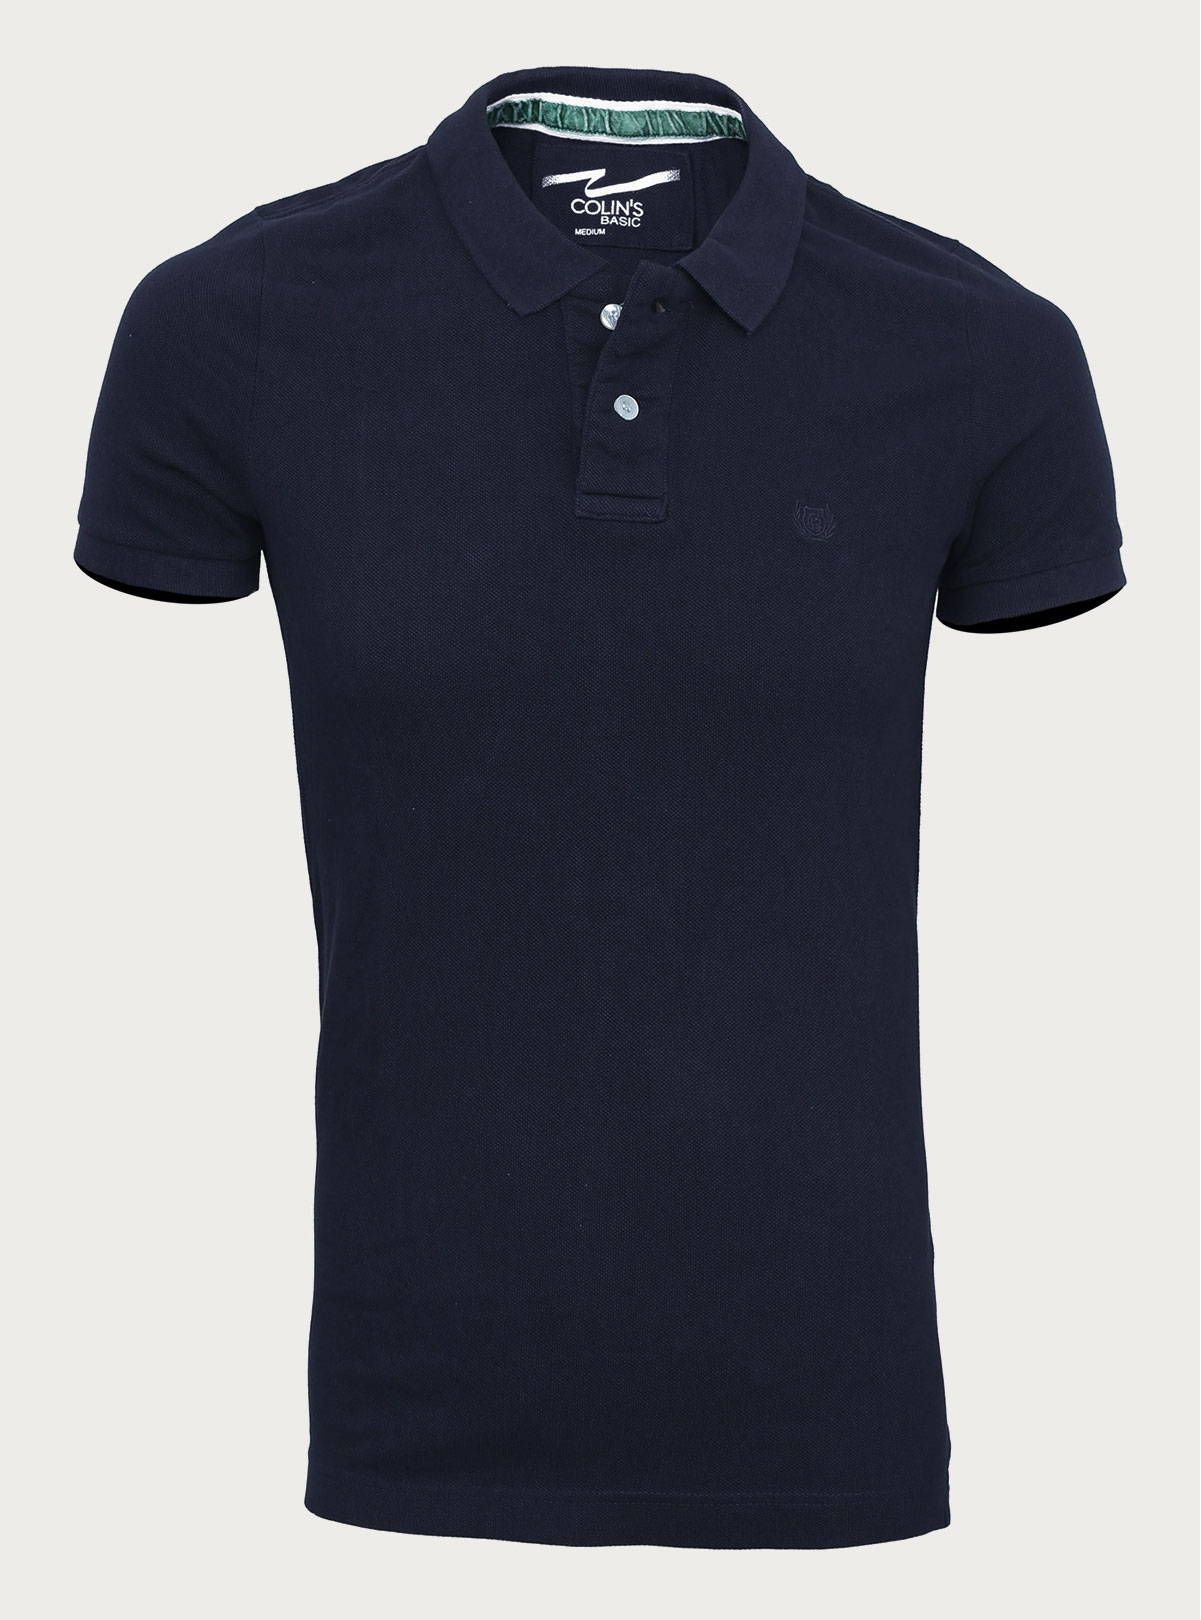 POLO T Shirt By-COLINS